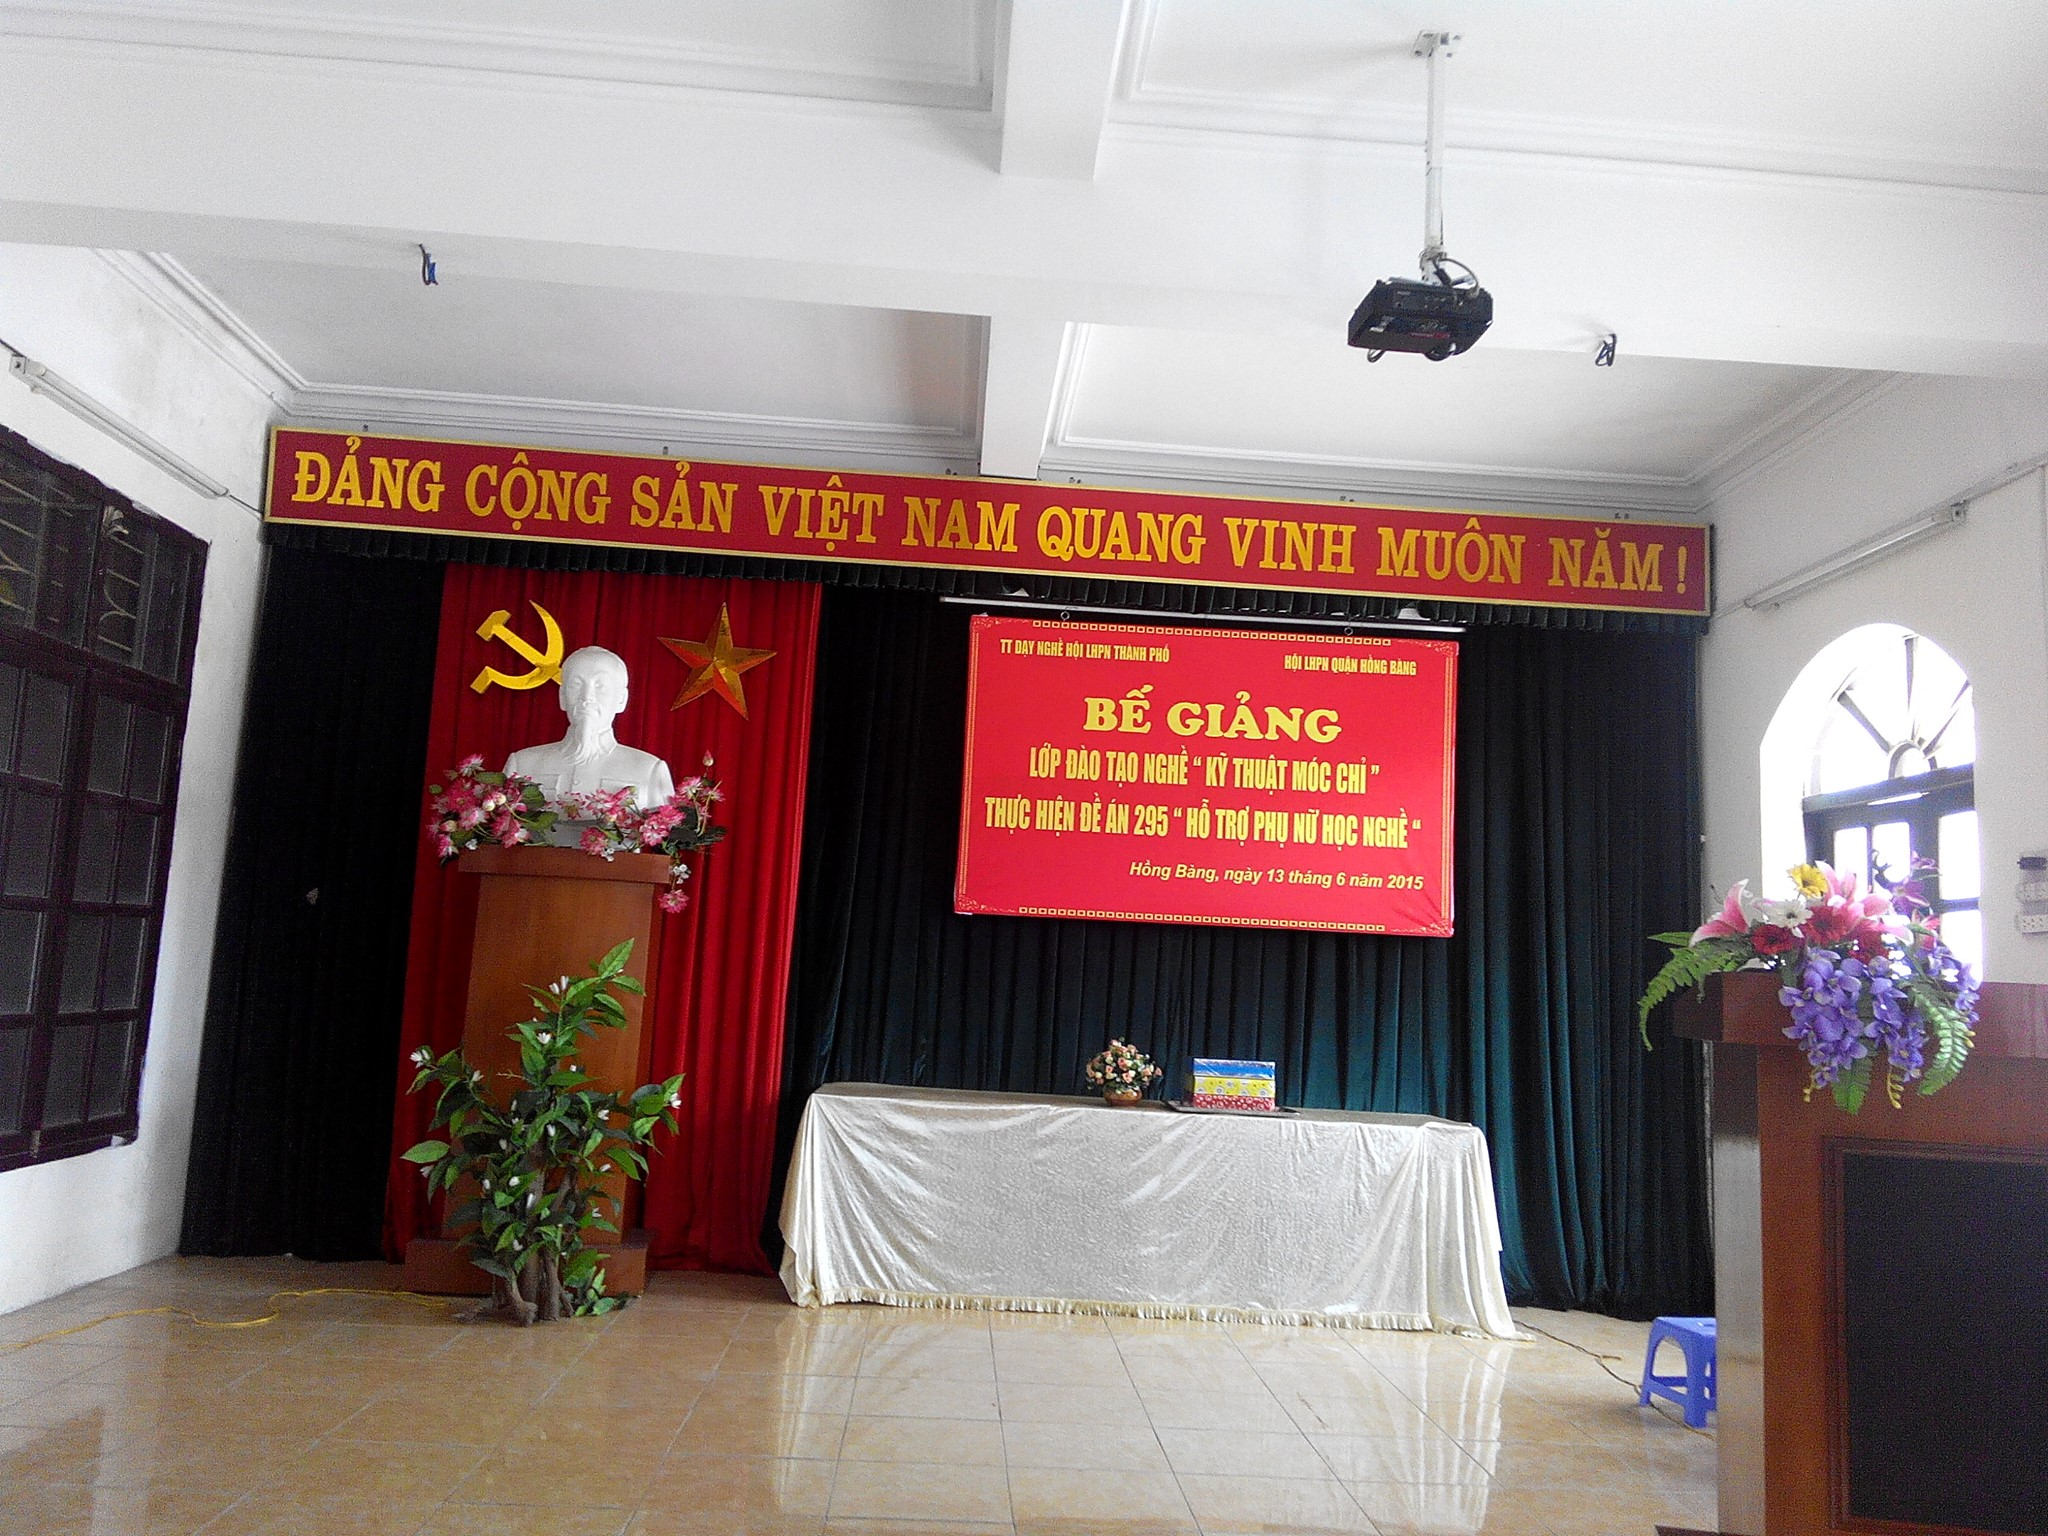 lop dao tao nghe ky thuat moc chi 01